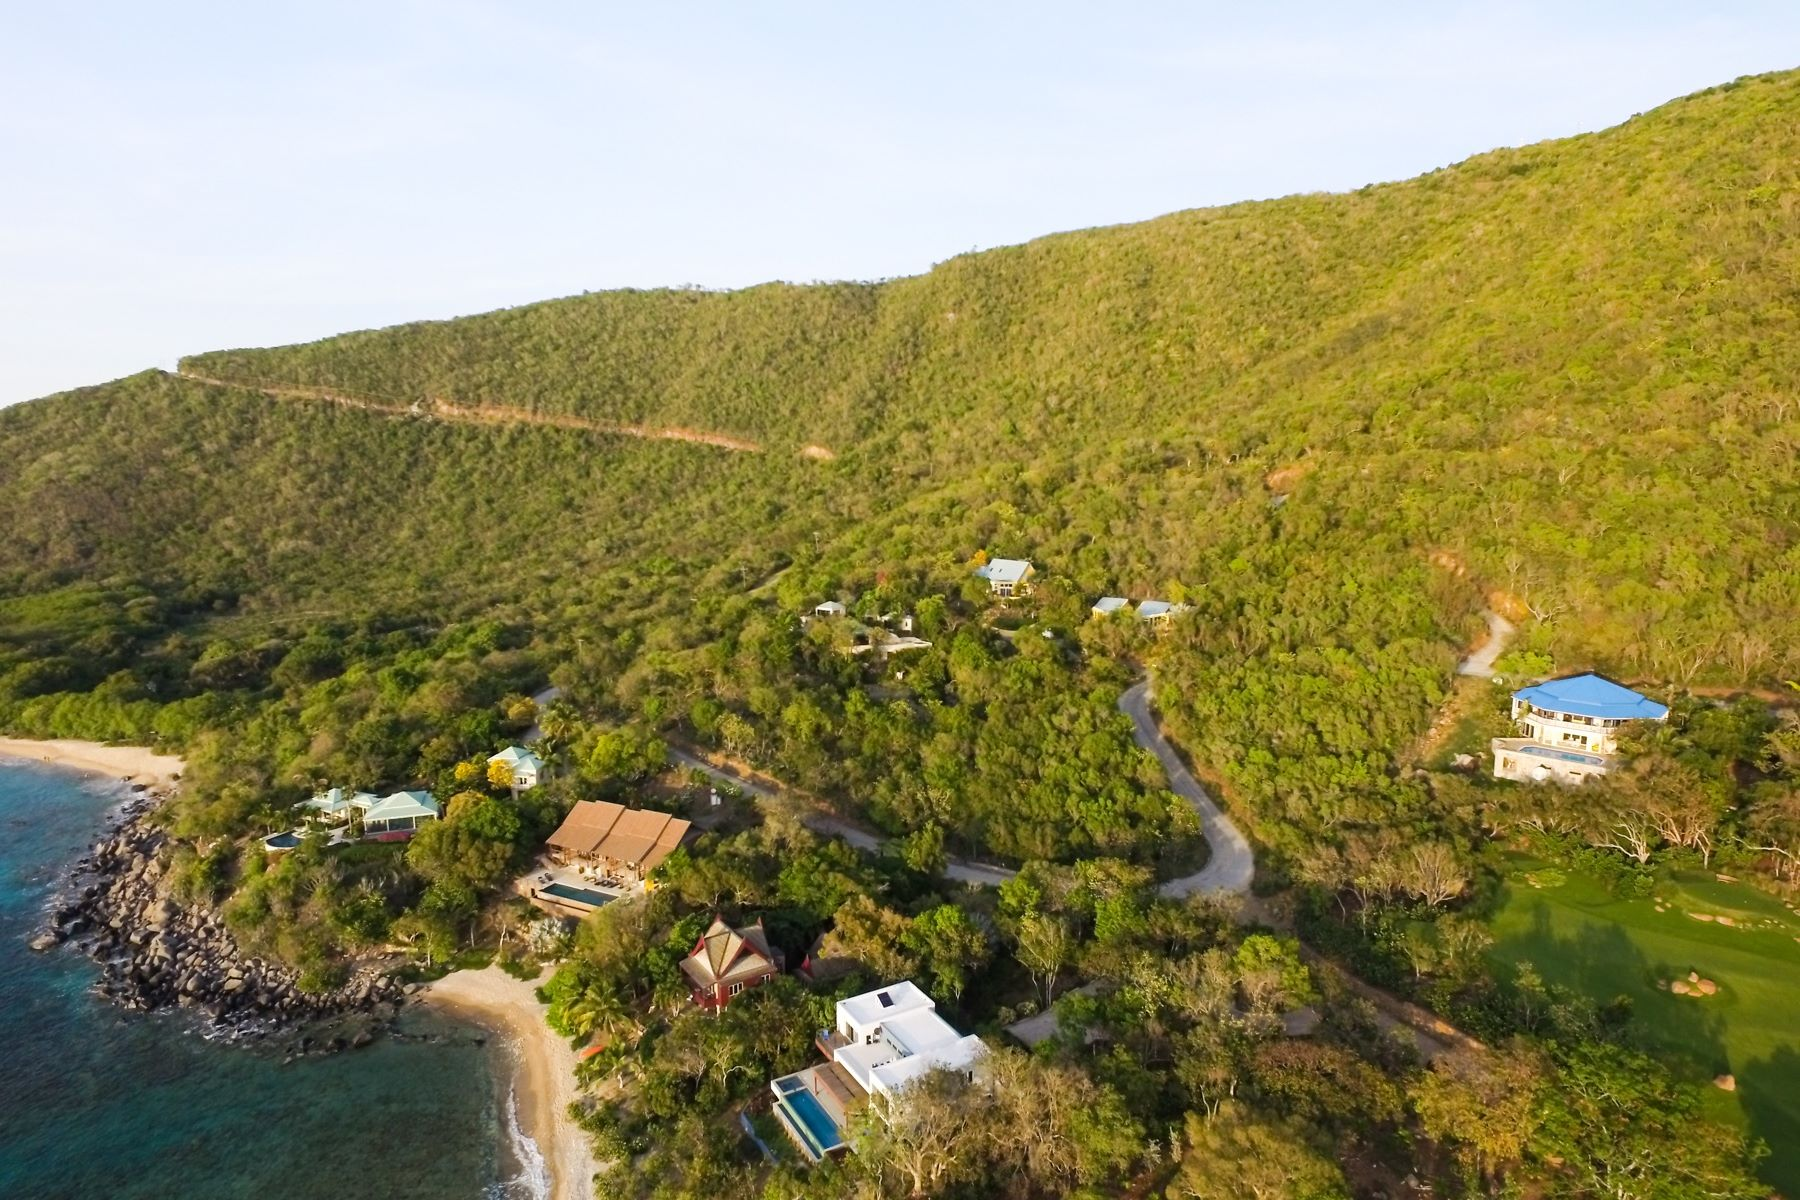 Arazi için Satış at Nail Bay Hillside Land Lots Nail Bay, Virgin Gorda Ingiliz Virgin Adalari